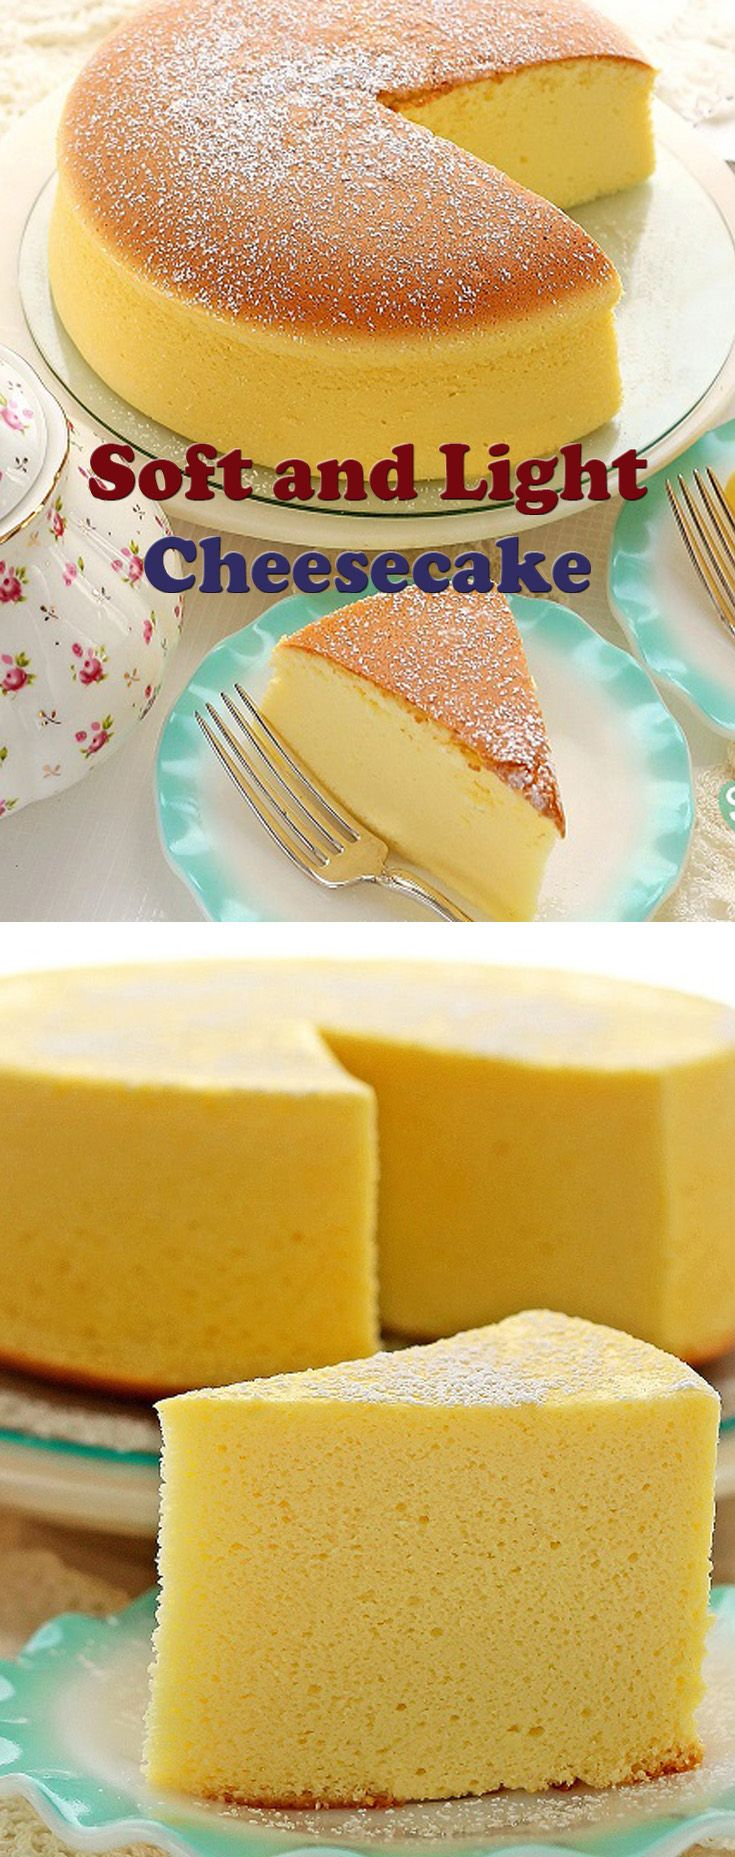 Soft and Light Cheesecake